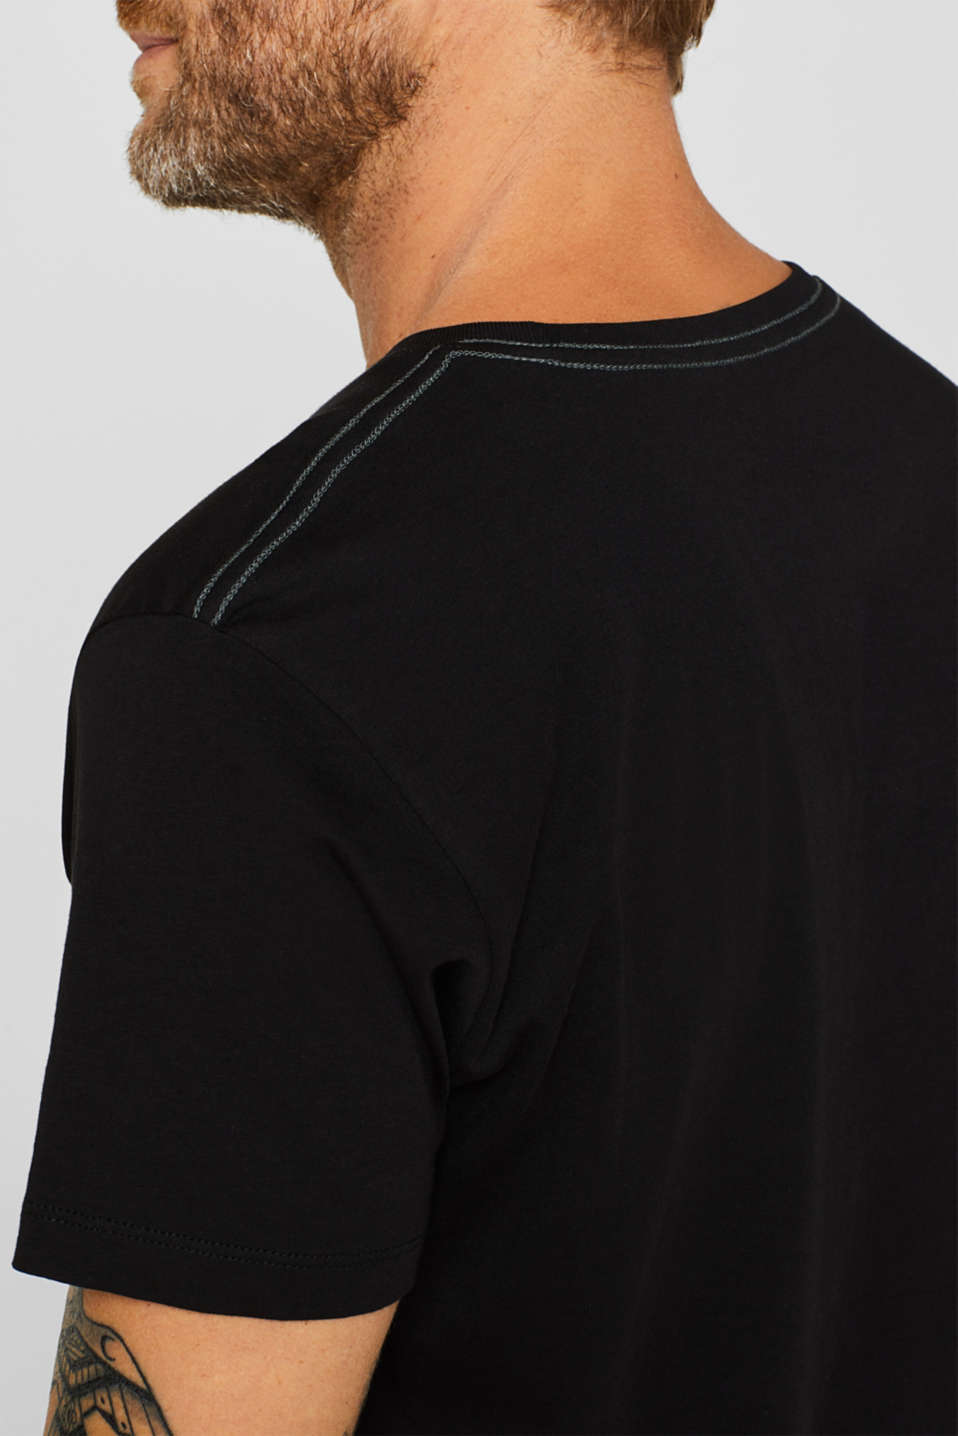 Jersey T-shirt with logo print, 100% cotton, BLACK, detail image number 1